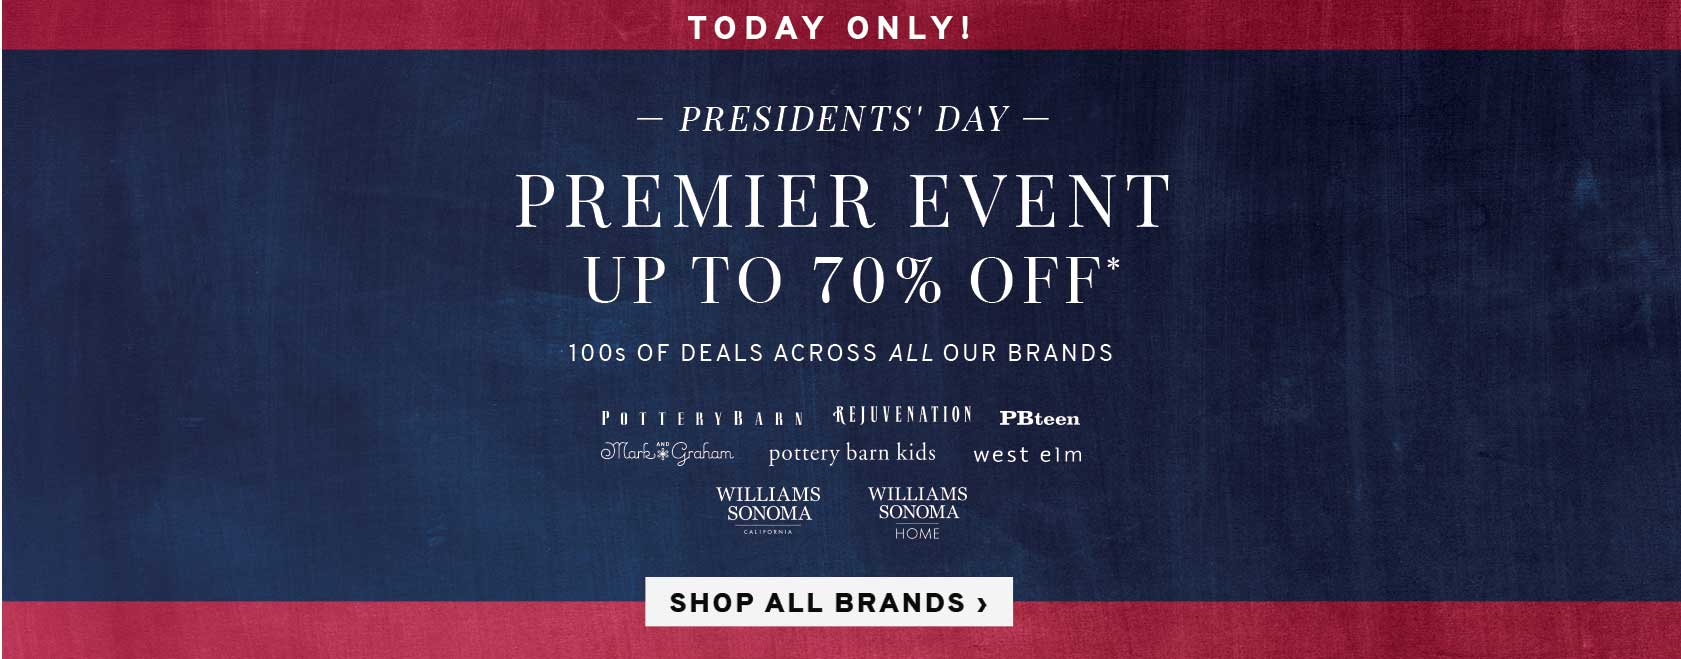 Today Only! Premier Event - Up To 70% Off 100s Of Deals Across All Our Brands